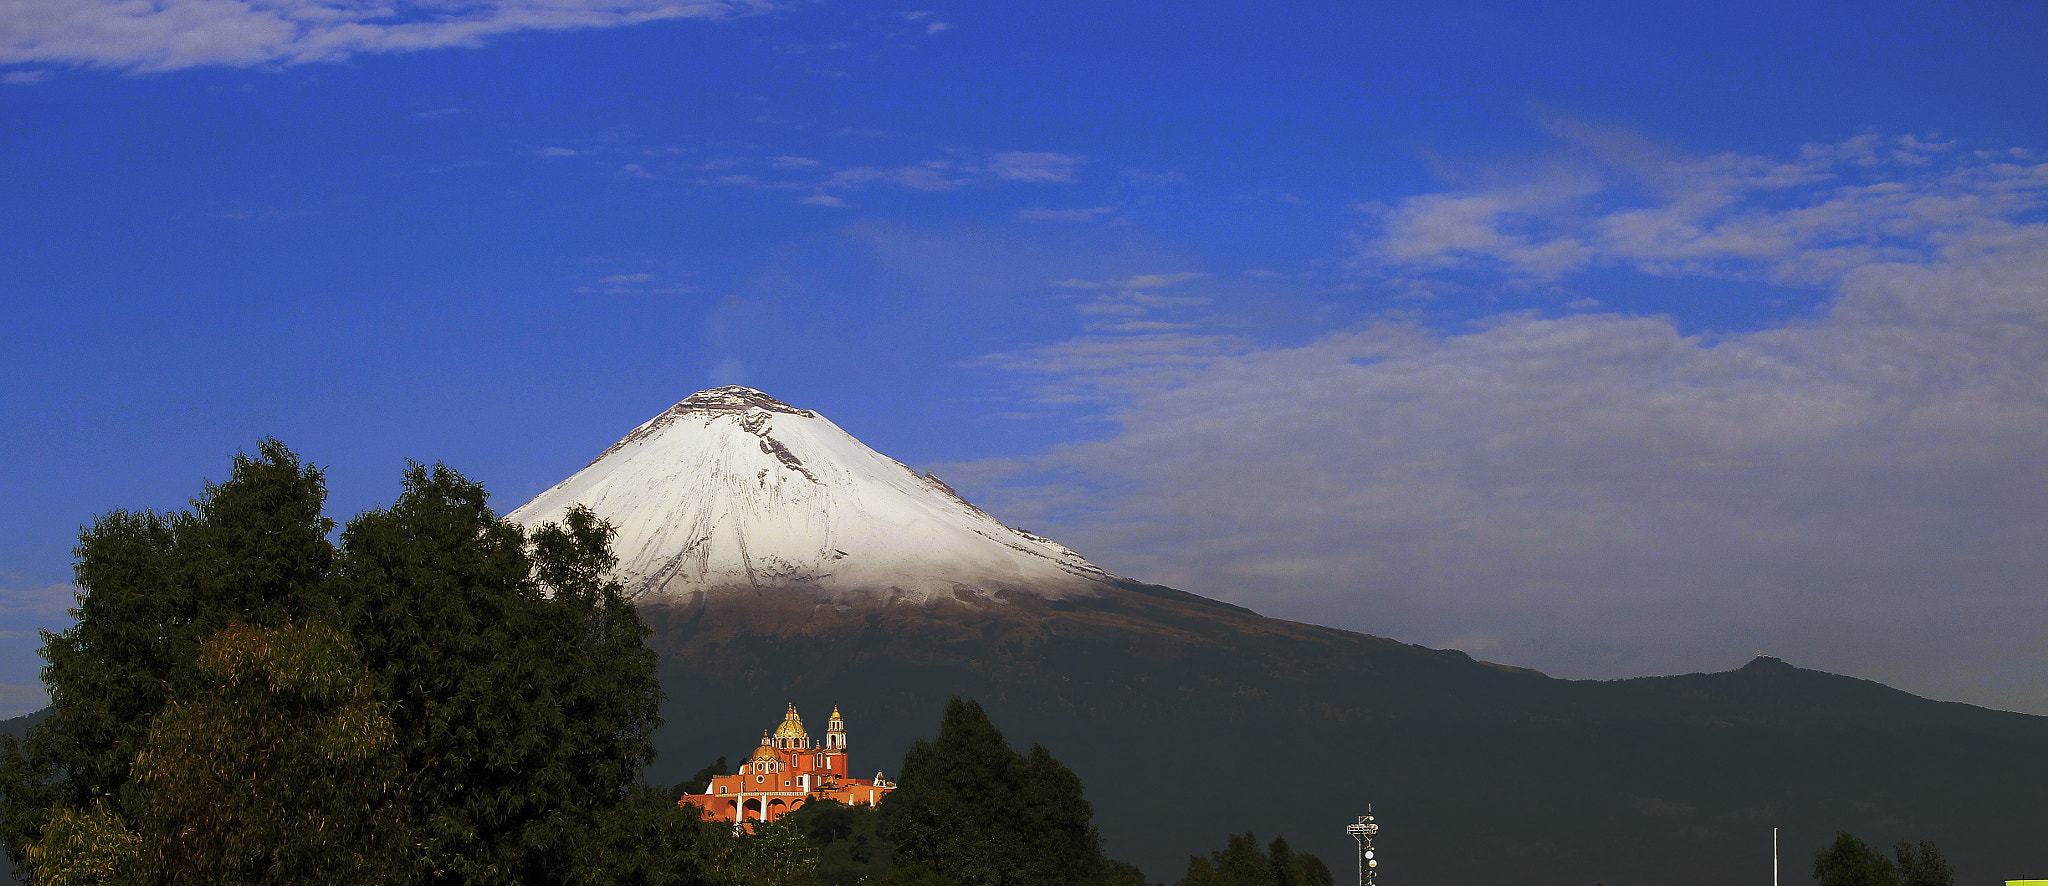 Photograph Snowy Volcano and Church by Cristobal Garciaferro Rubio on 500px